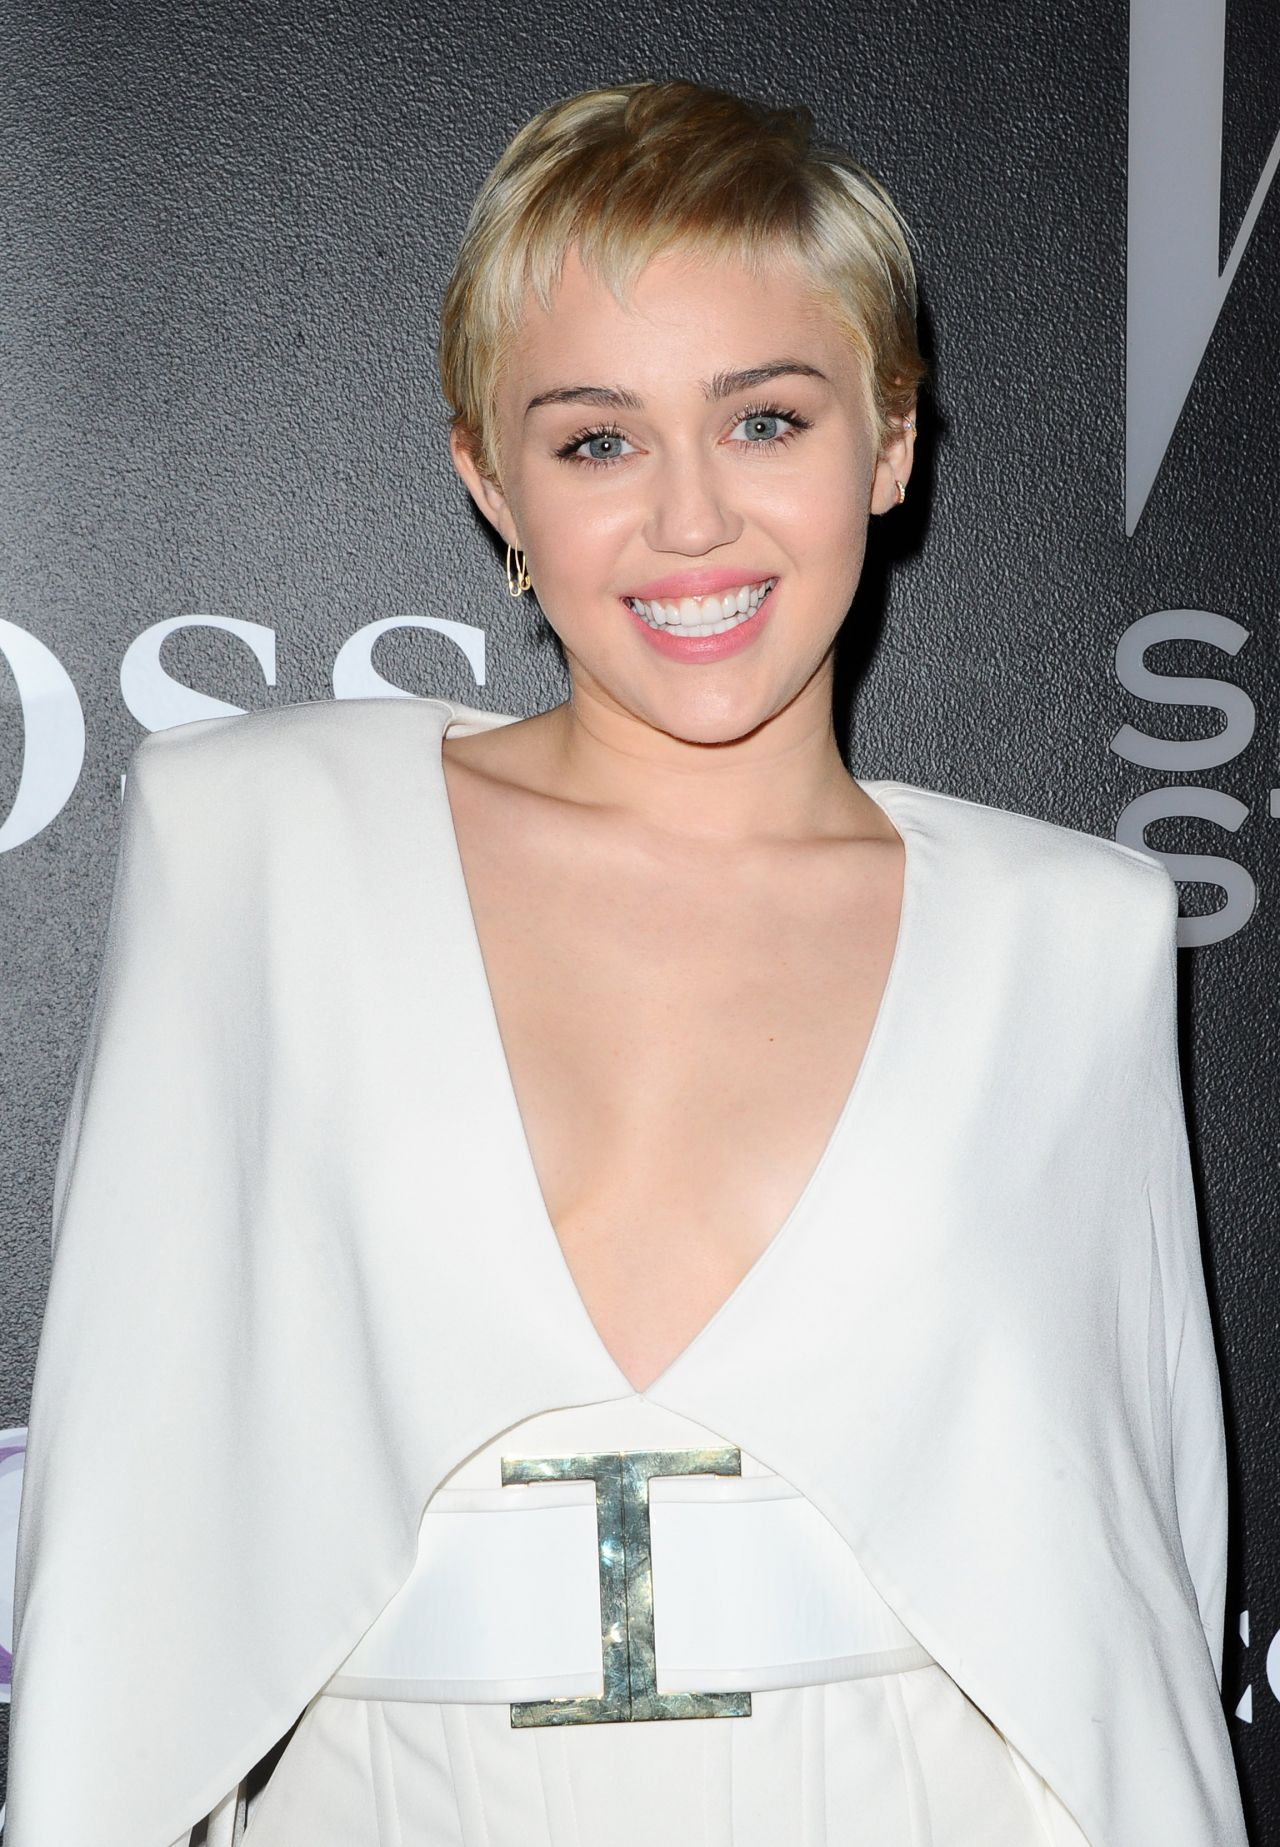 Miley Cyrus W Magazine S Shooting Stars Exhibit 2015 In